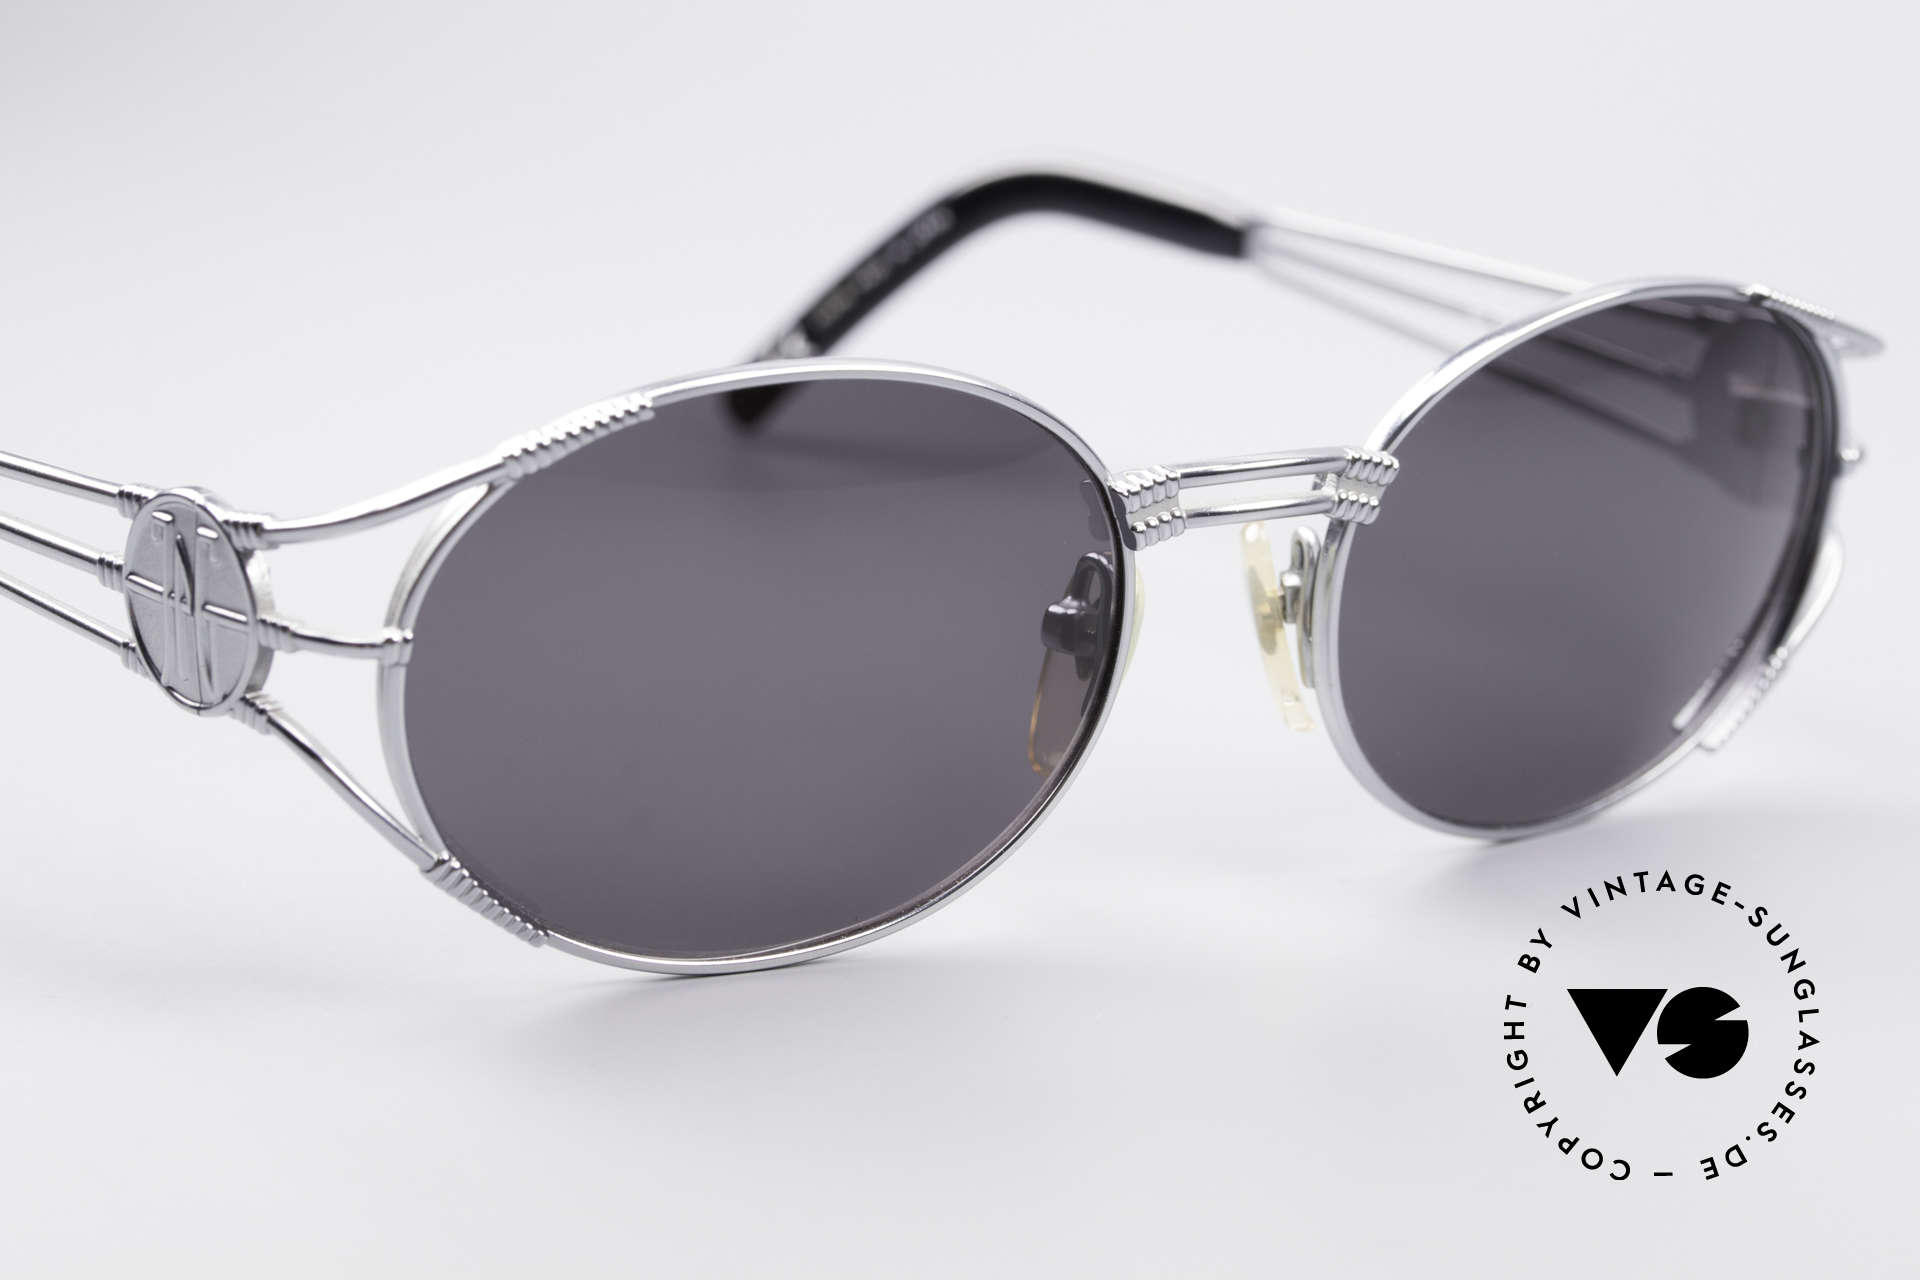 Jean Paul Gaultier 58-5106 Oval JPG Steampunk Shades, NO RETRO sunglasses, but a 20 years old original, Made for Men and Women